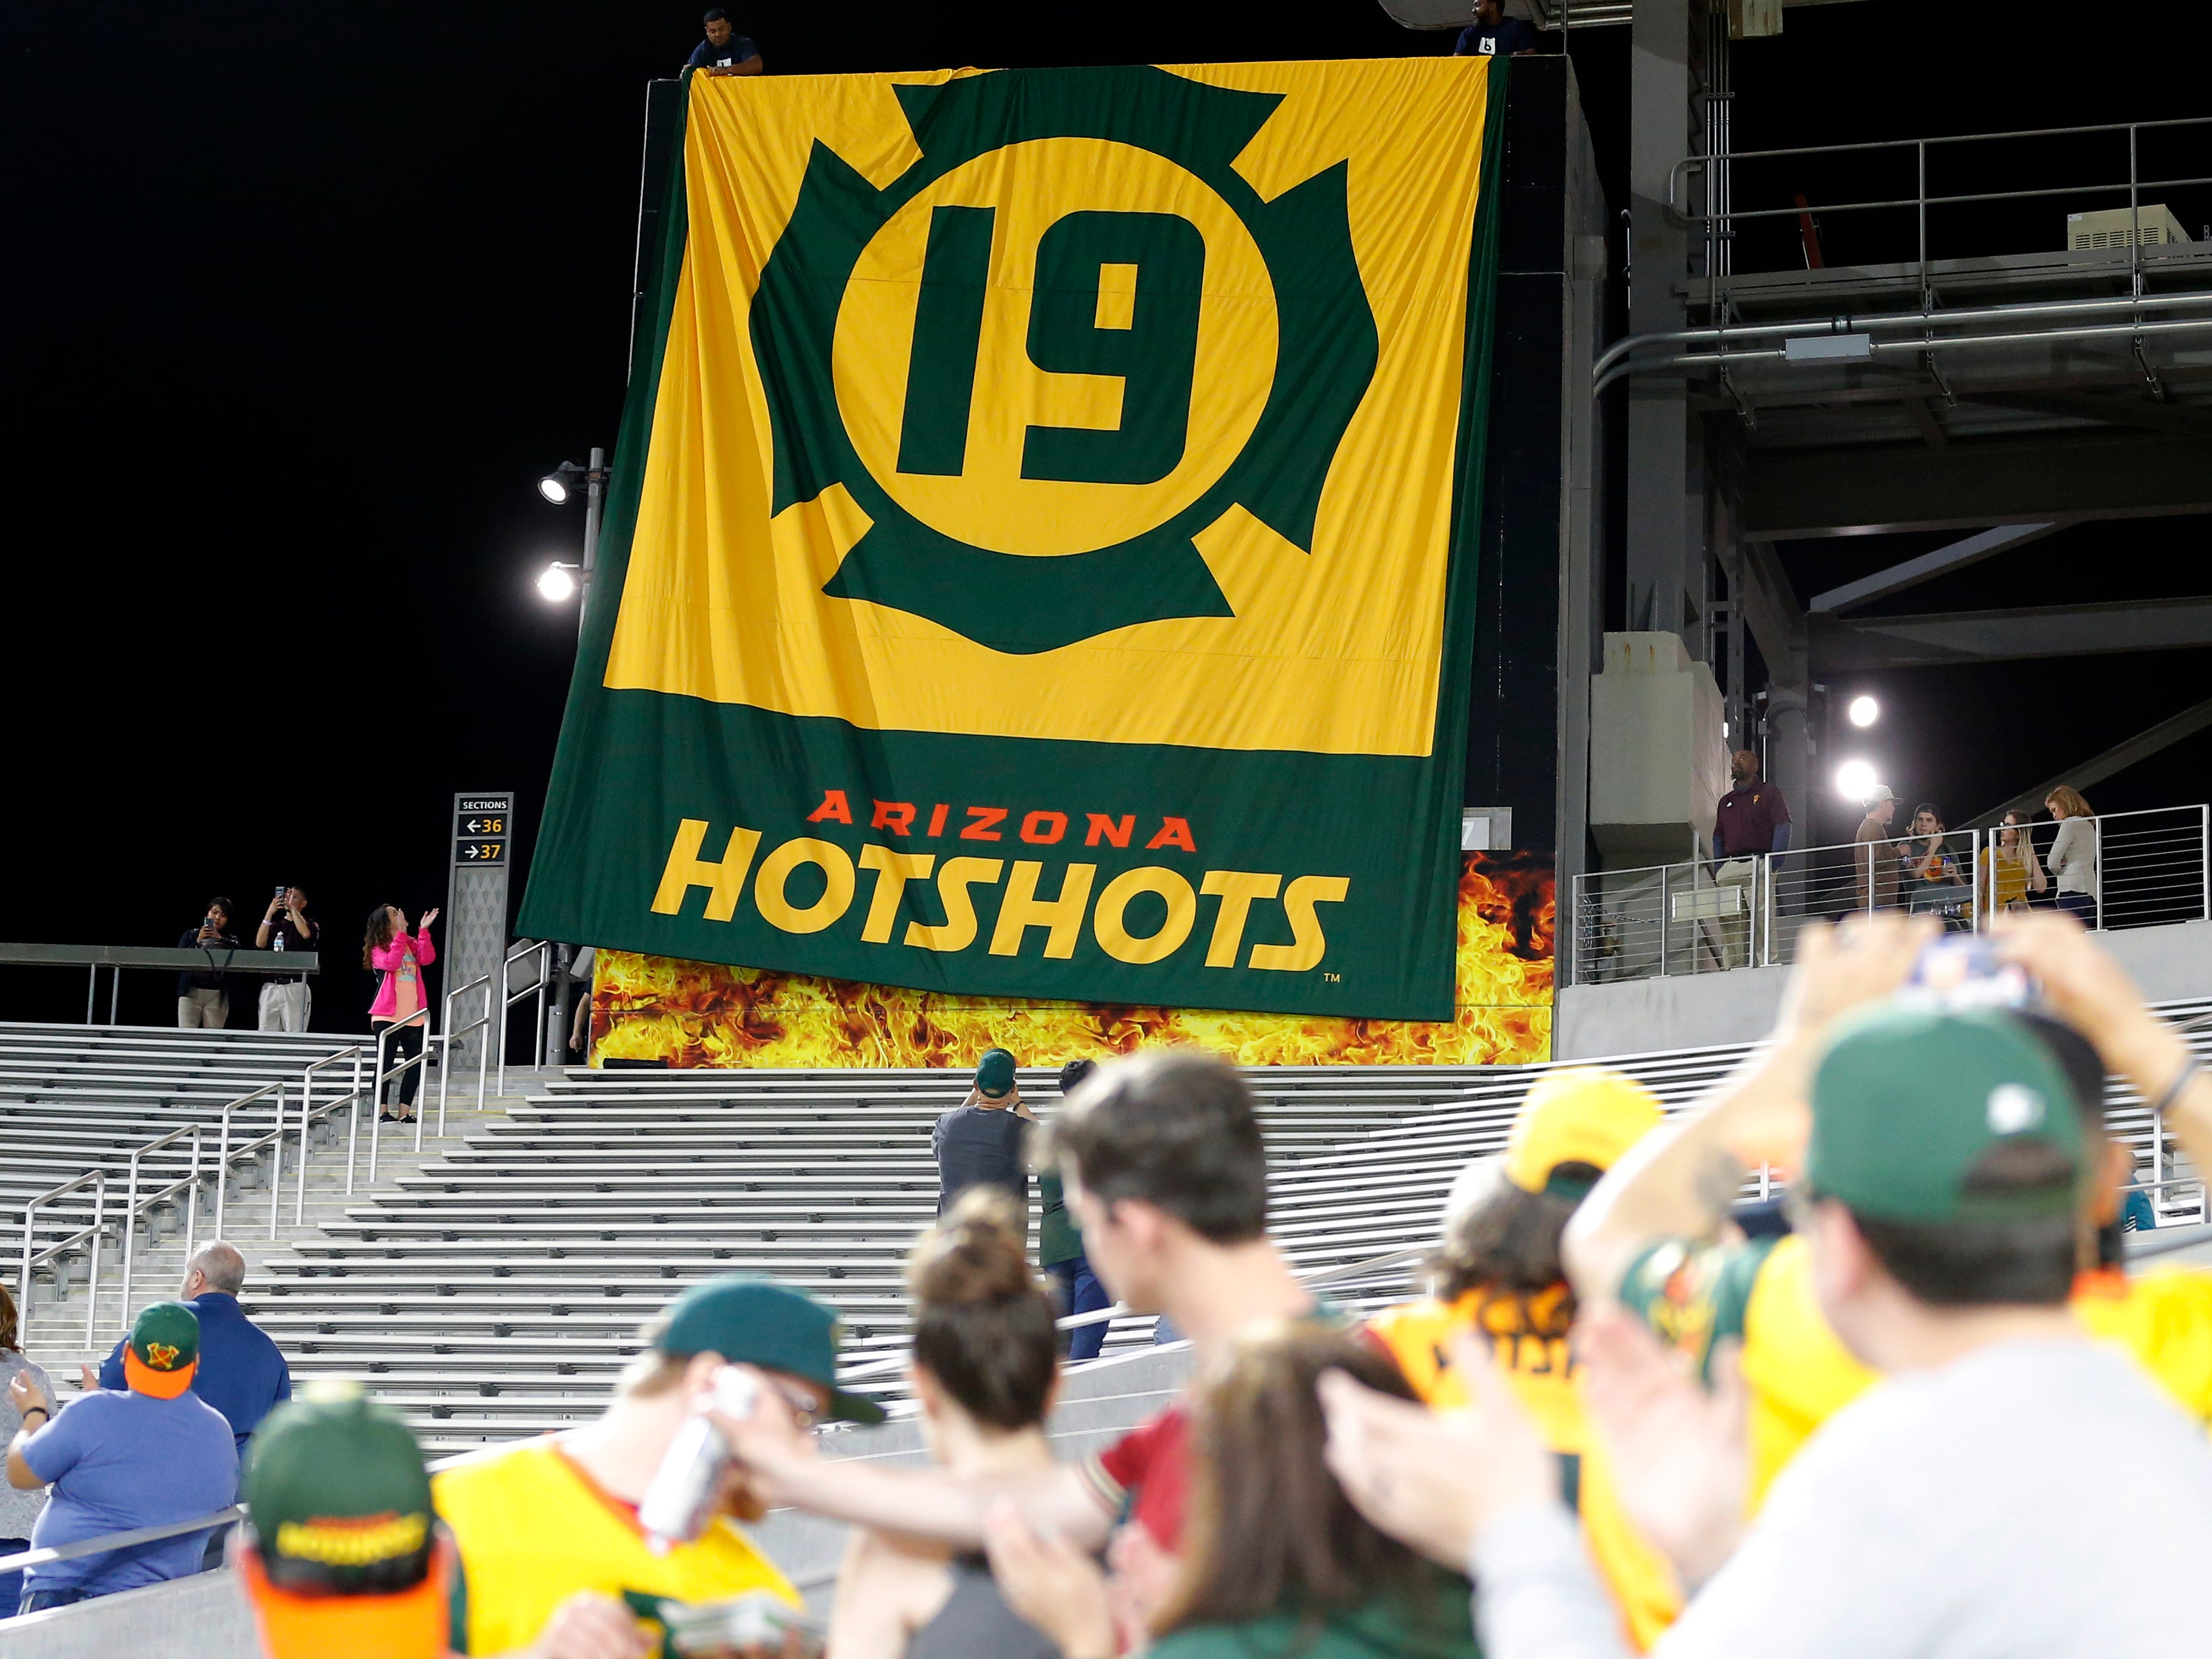 The Arizona Hotshots retire the number 19 at halftime during an AAF football game against the Atlanta Legends, Sunday, March 3, 2019, at Sun Devil Stadium in Phoenix.